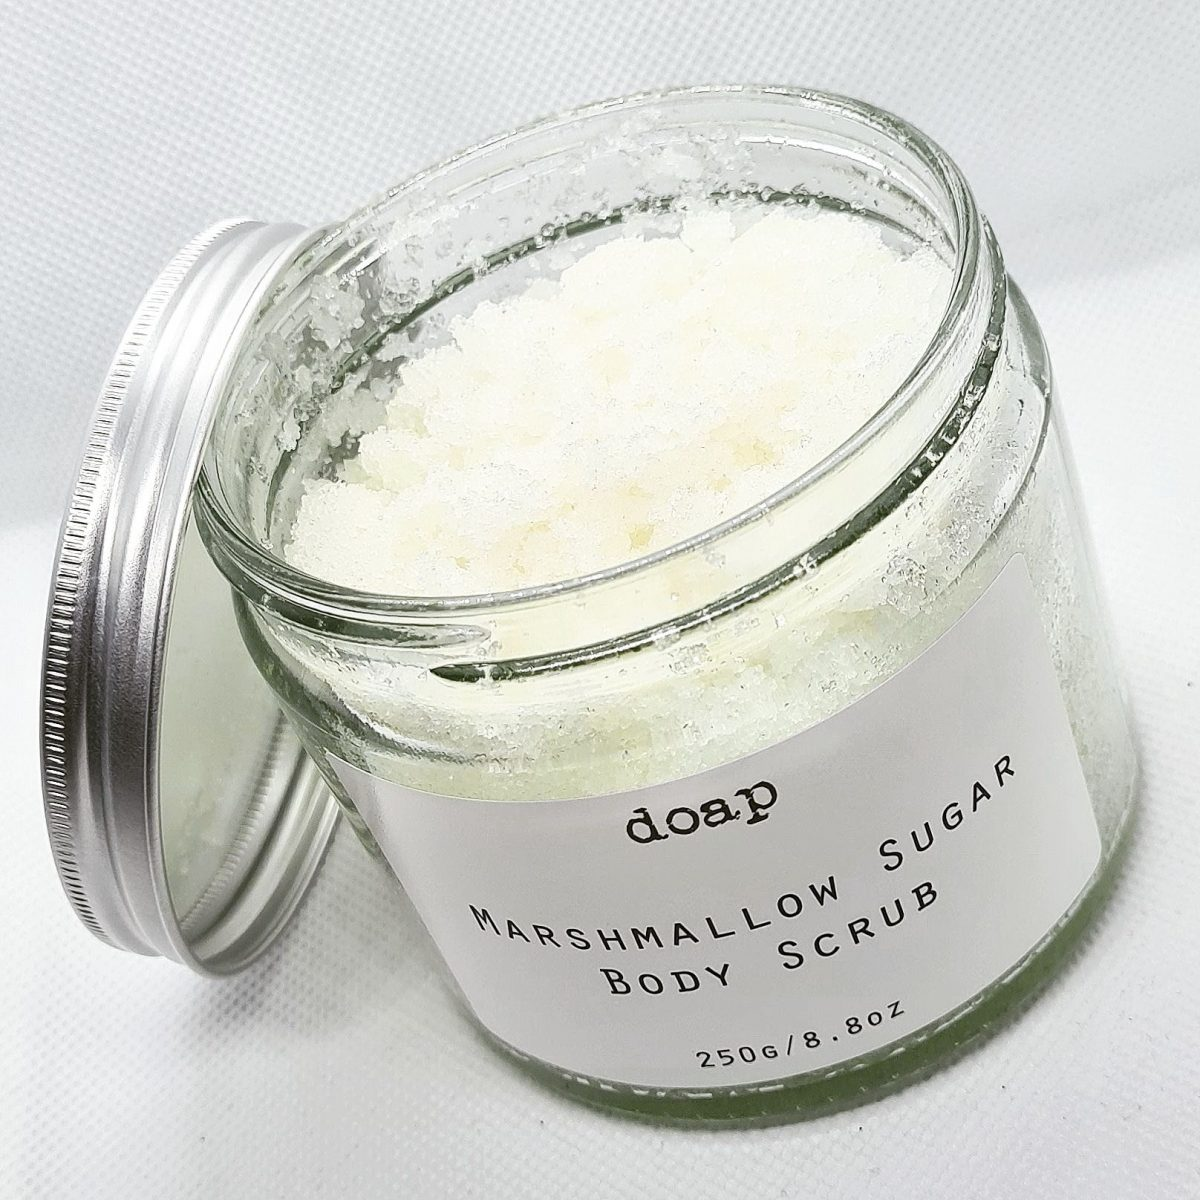 DOAP Marshmallow Sugar Body Scrub 250g